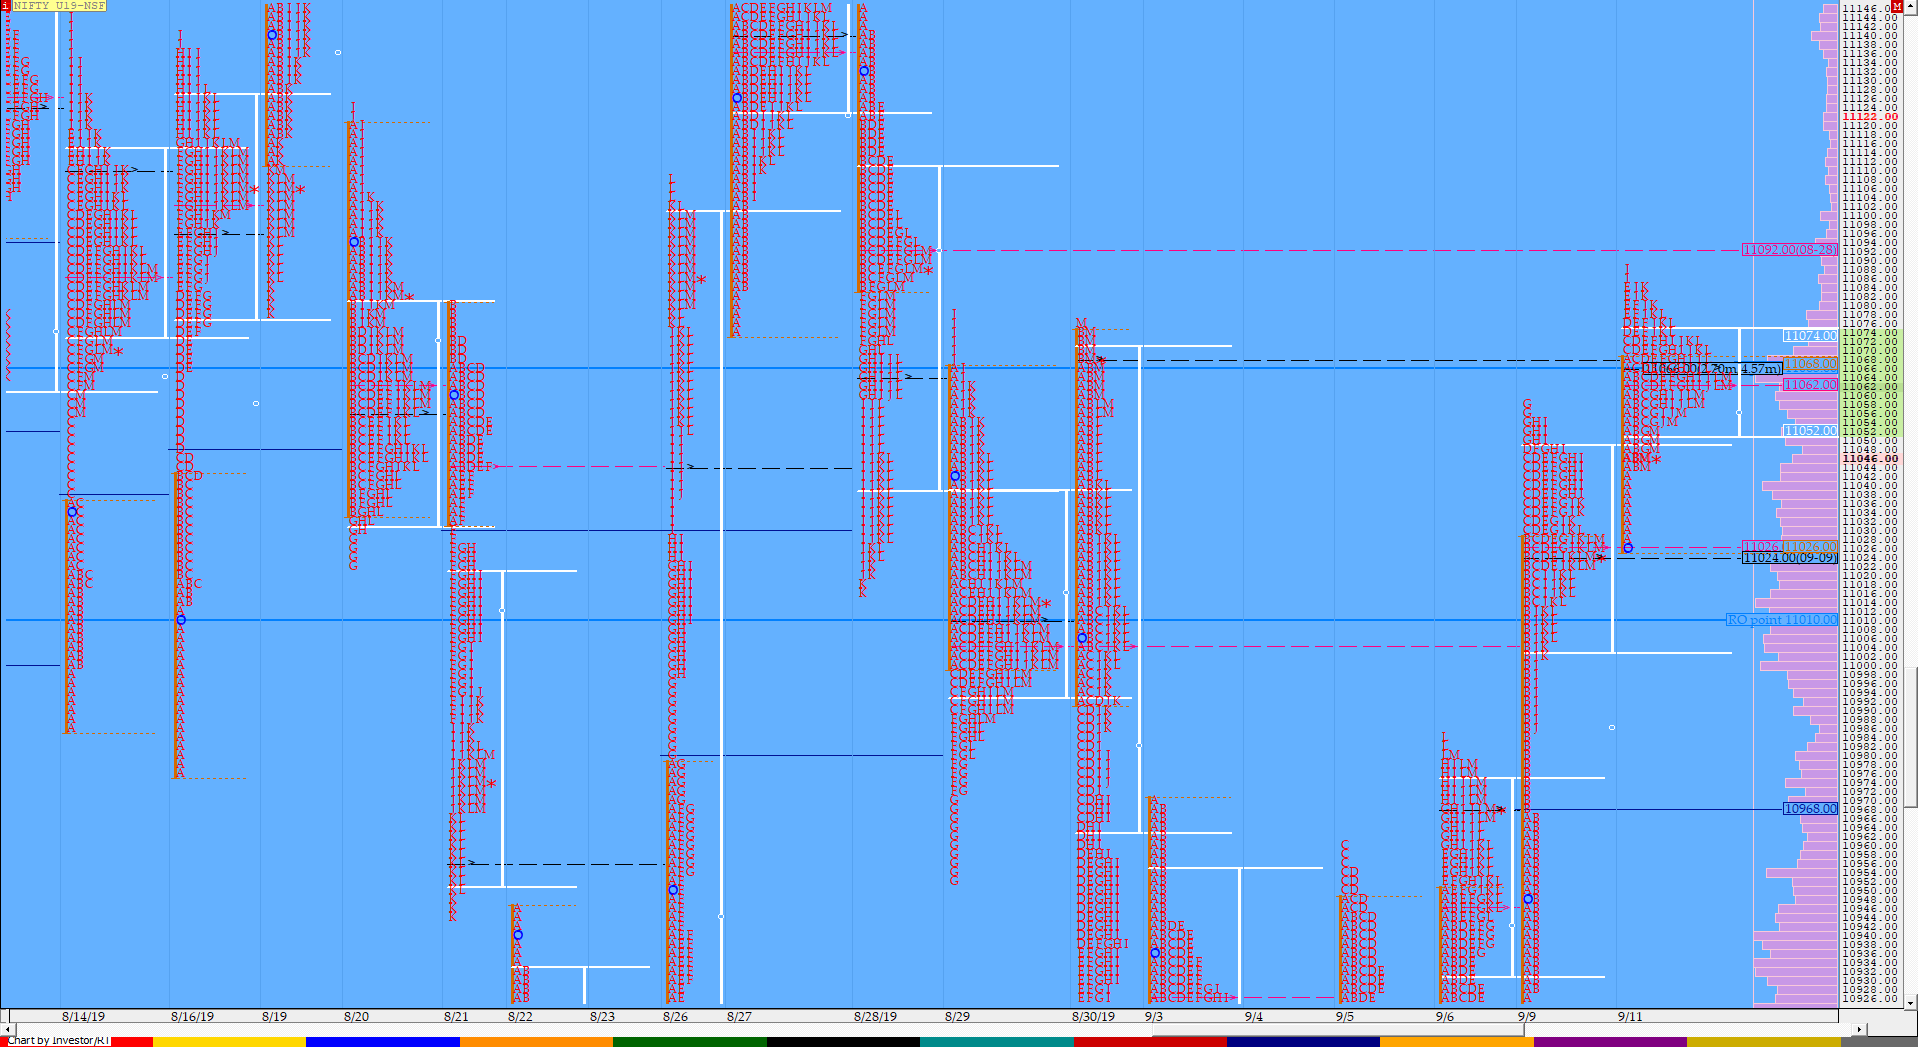 Market Profile Analysis dated 11th September 2